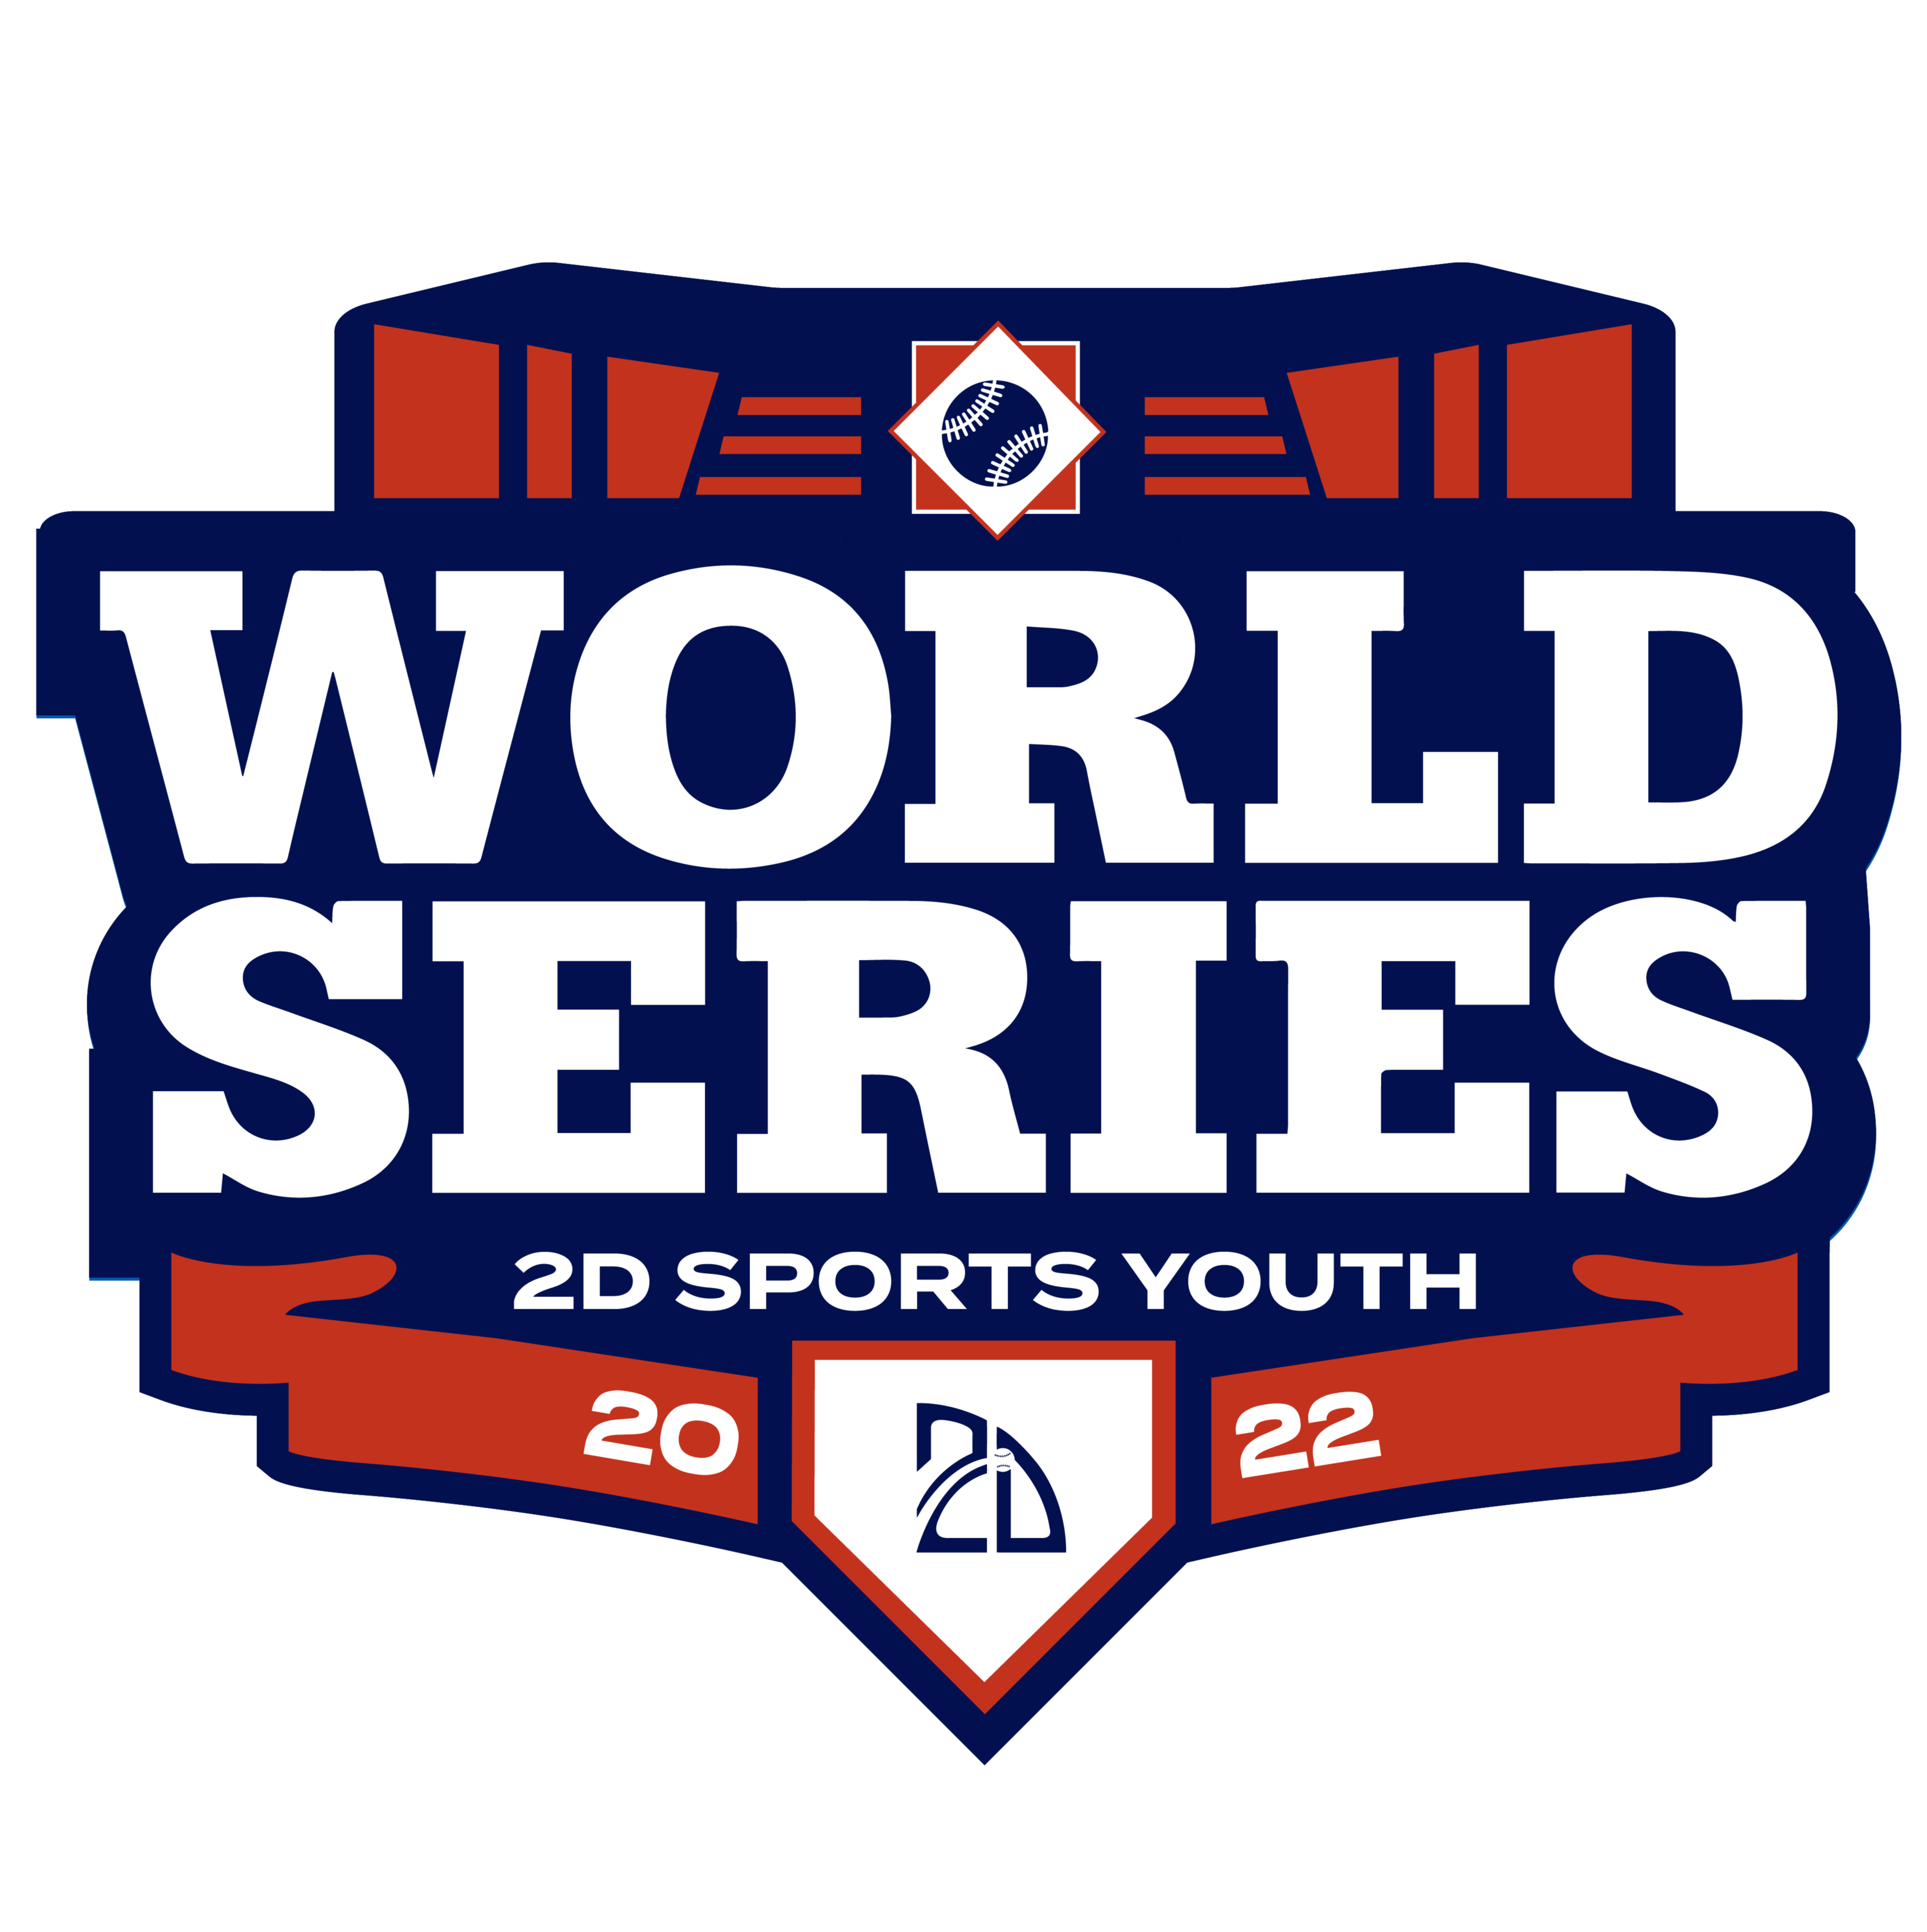 2D Youth World Series I - Powered by Marucci